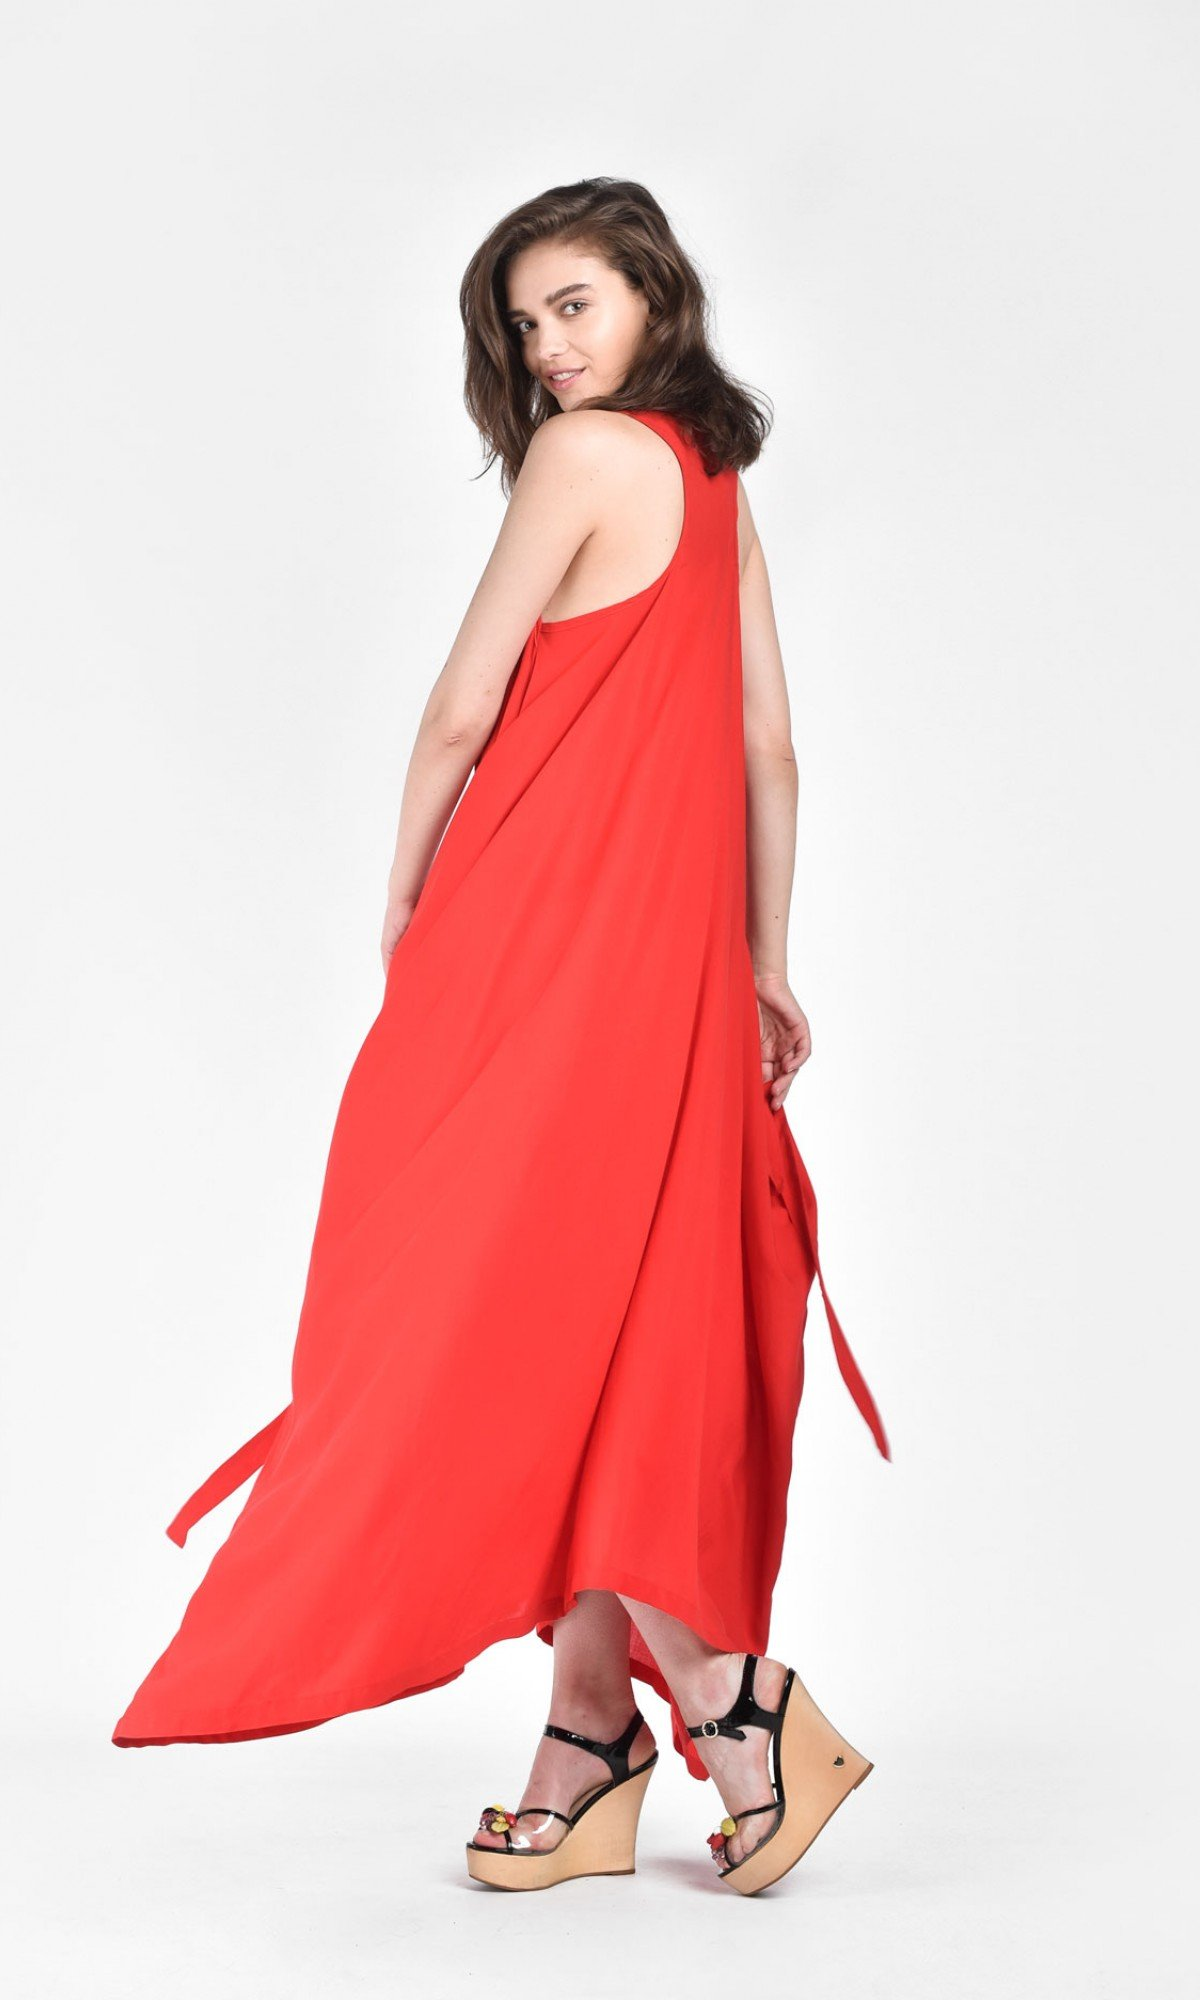 Draped sleeveless dress with adjustable belt A03633